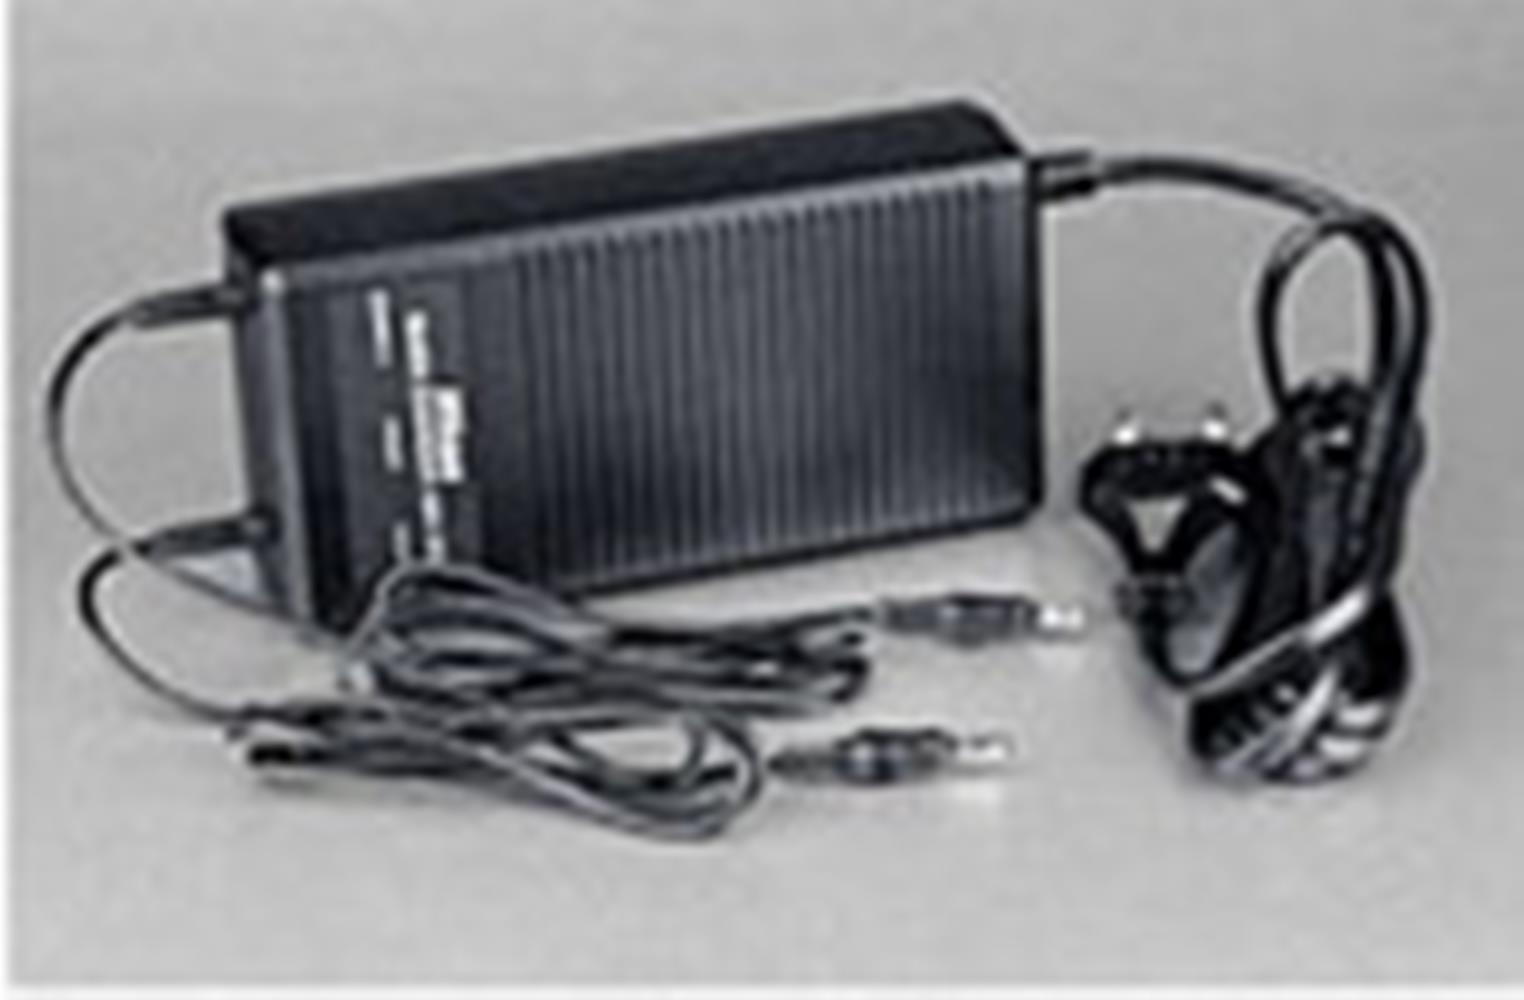 NIKON MH-20 CHARGER FOR MN-20